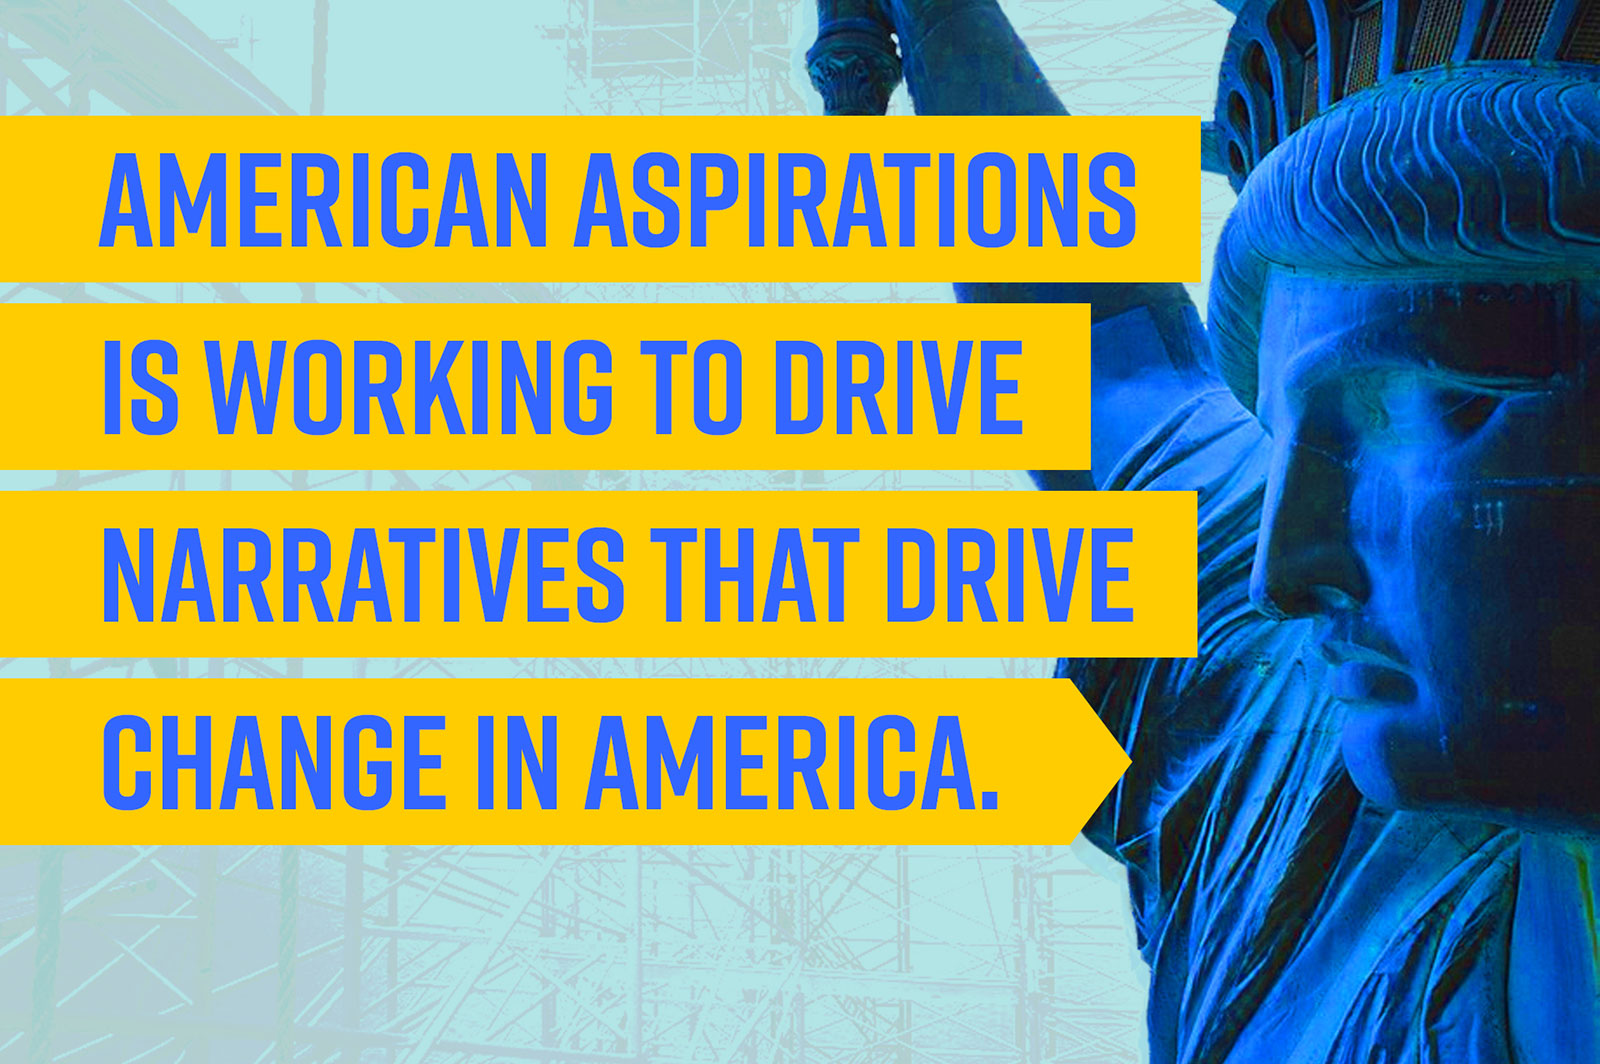 American Aspirations is working to drive narratives that drive change in America